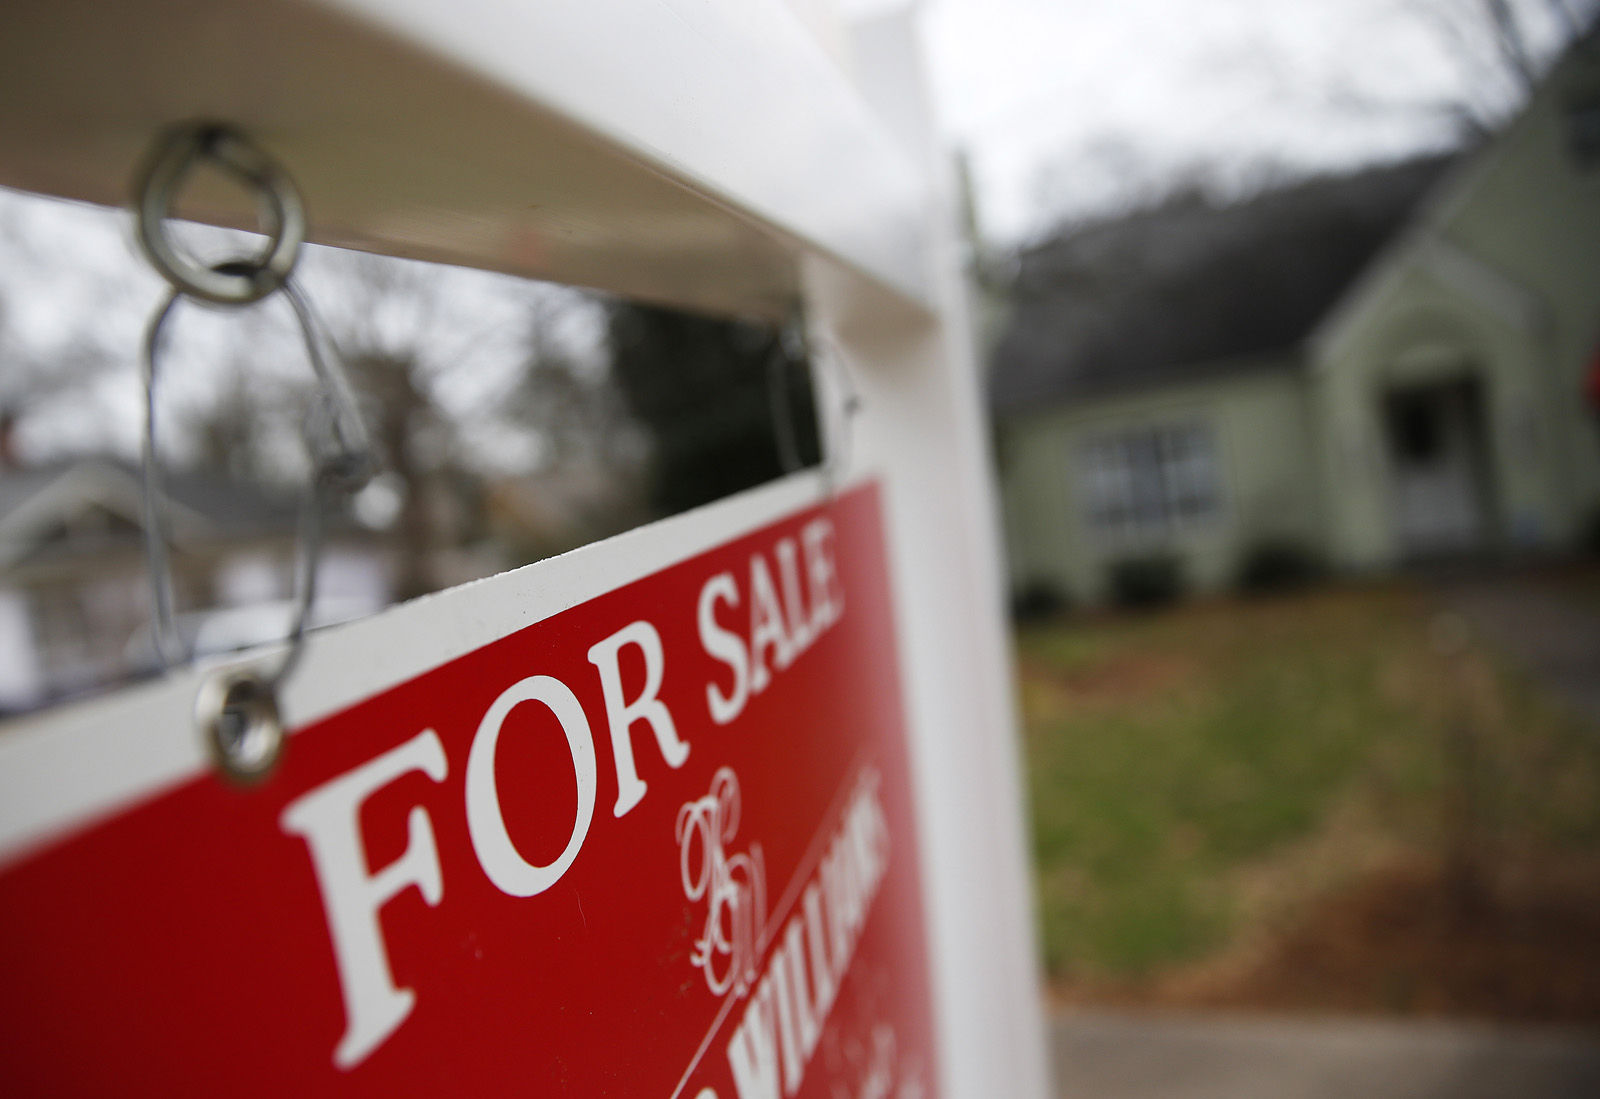 US home sales climbed in January despite weaker economy